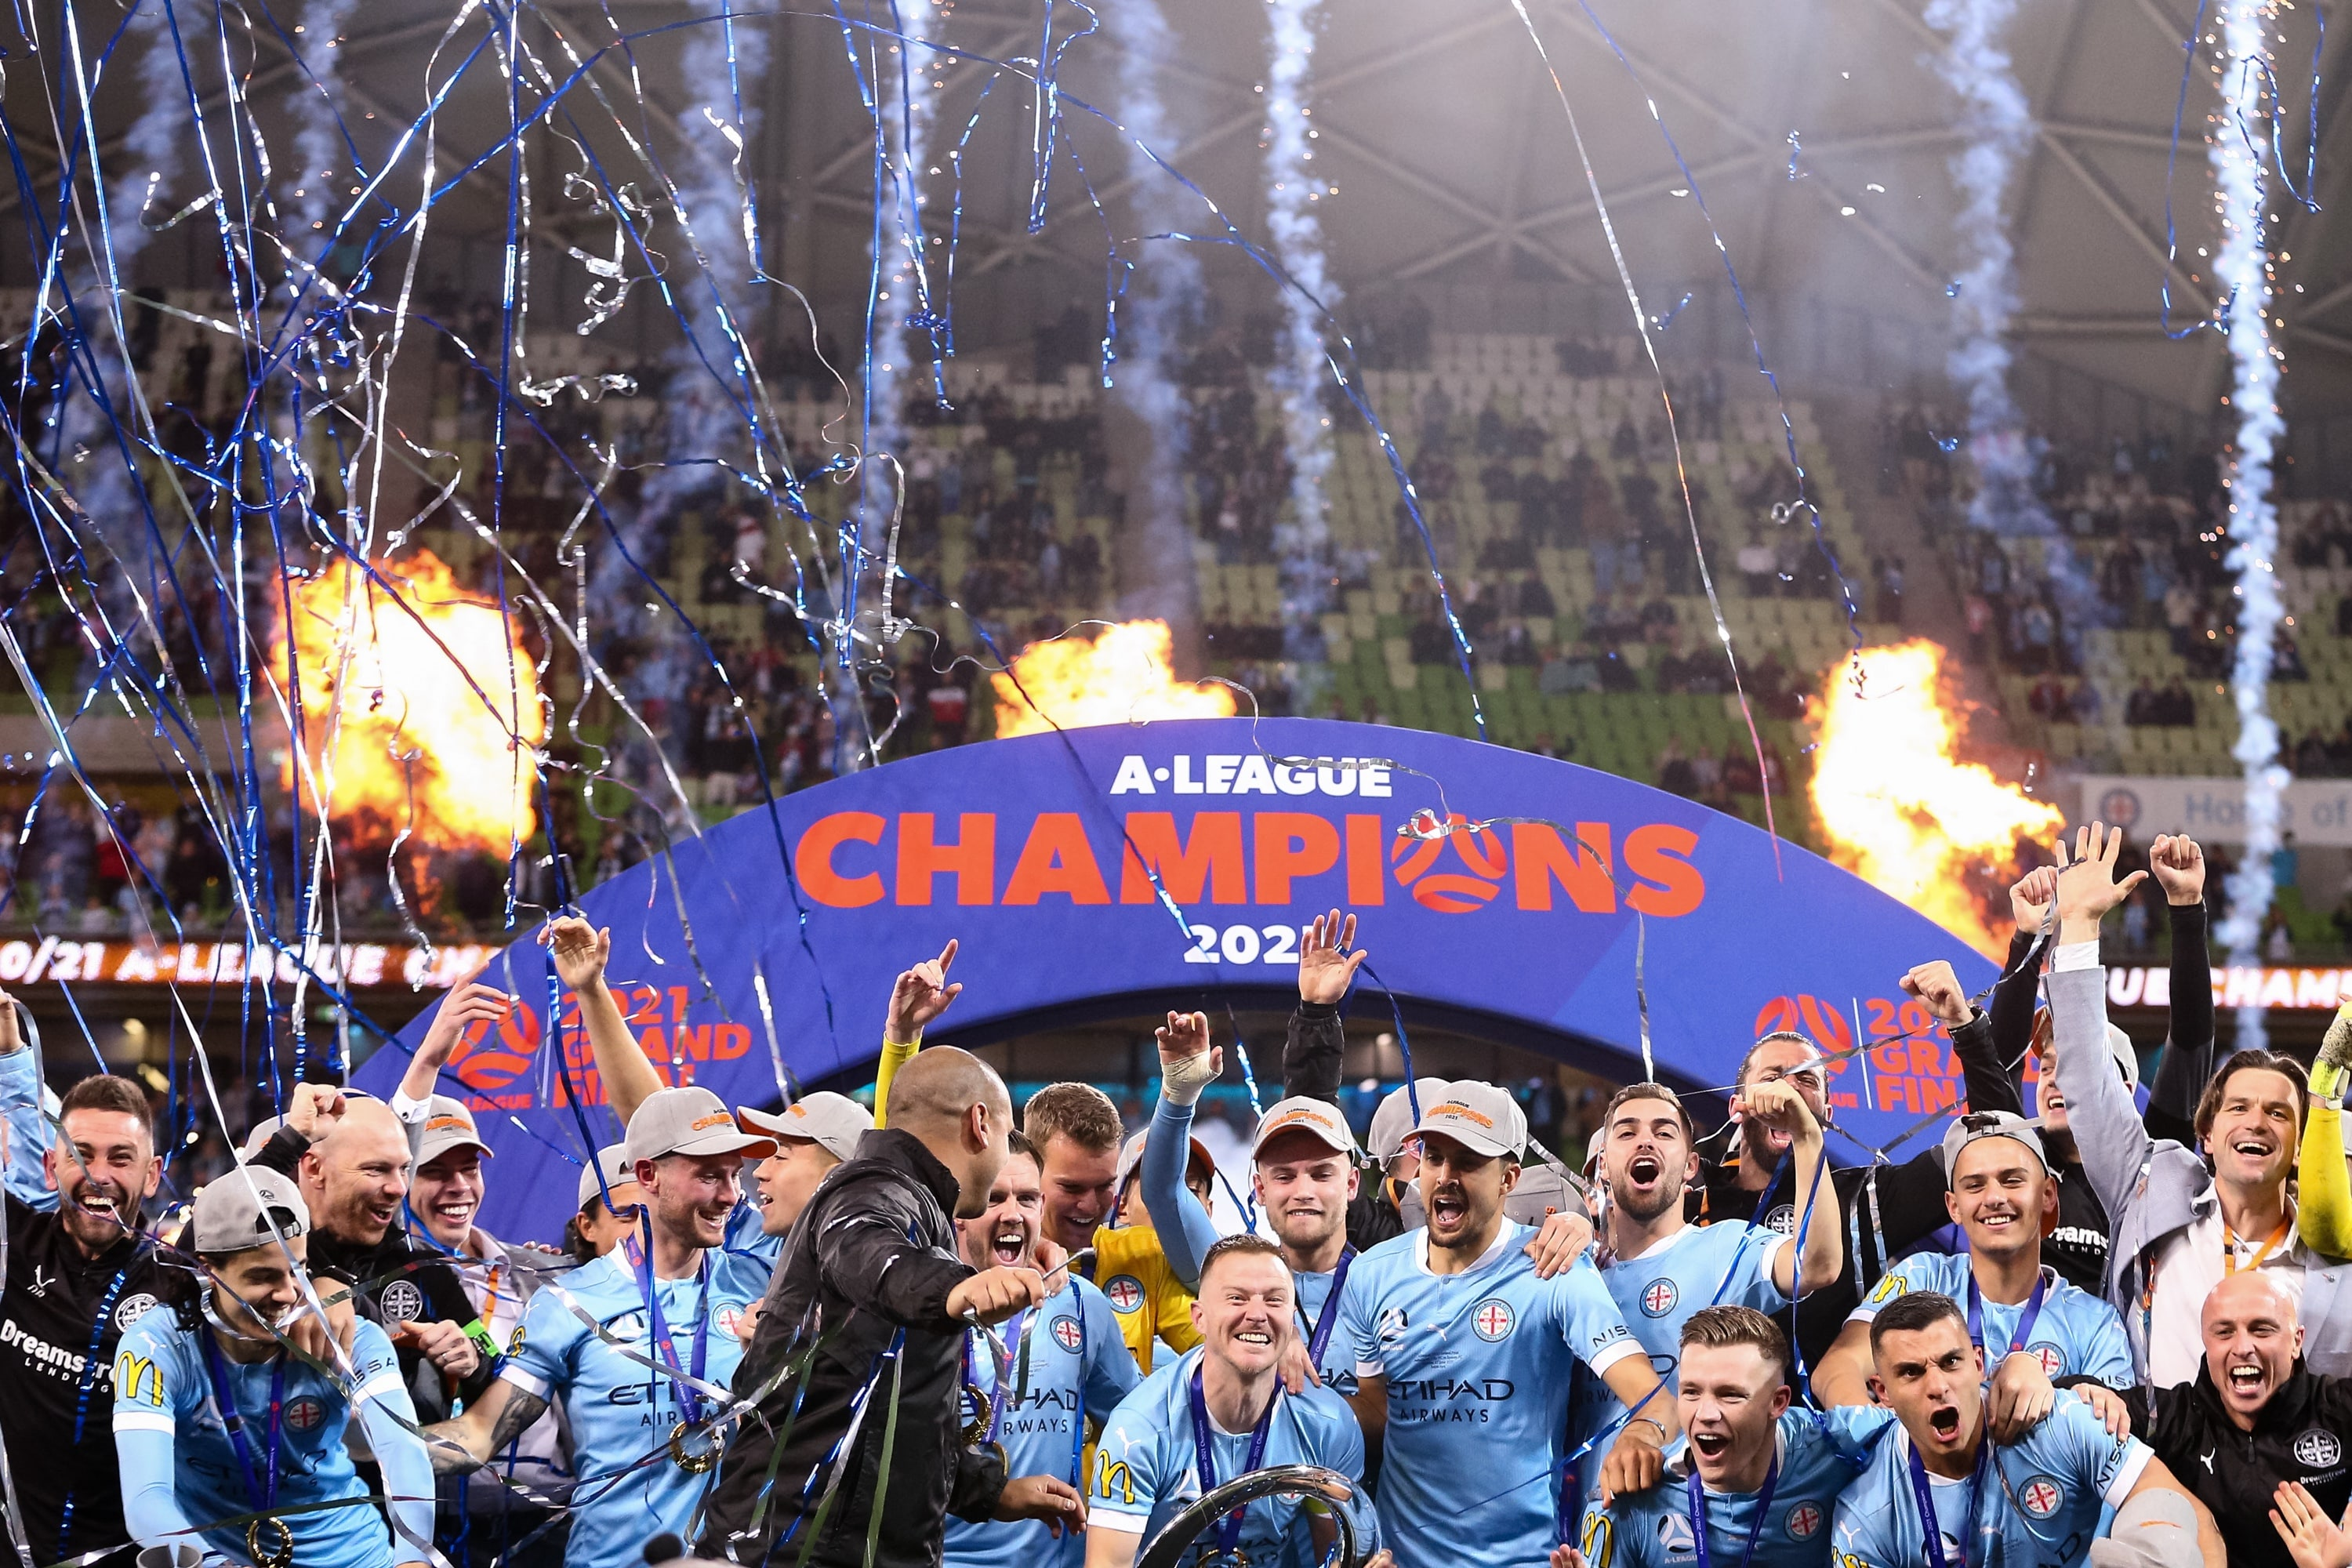 MELBOURNE, AUSTRALIA - JUNE 27: Melbourne celebrate on the podium during the A-League Grand-Final soccer match between Melbourne City FC and Sydney FC on June 27, 2021 at AAMI Park in Melbourne, Australia. (Photo by Dave Hewison/Speed Media/Icon Sportswire)